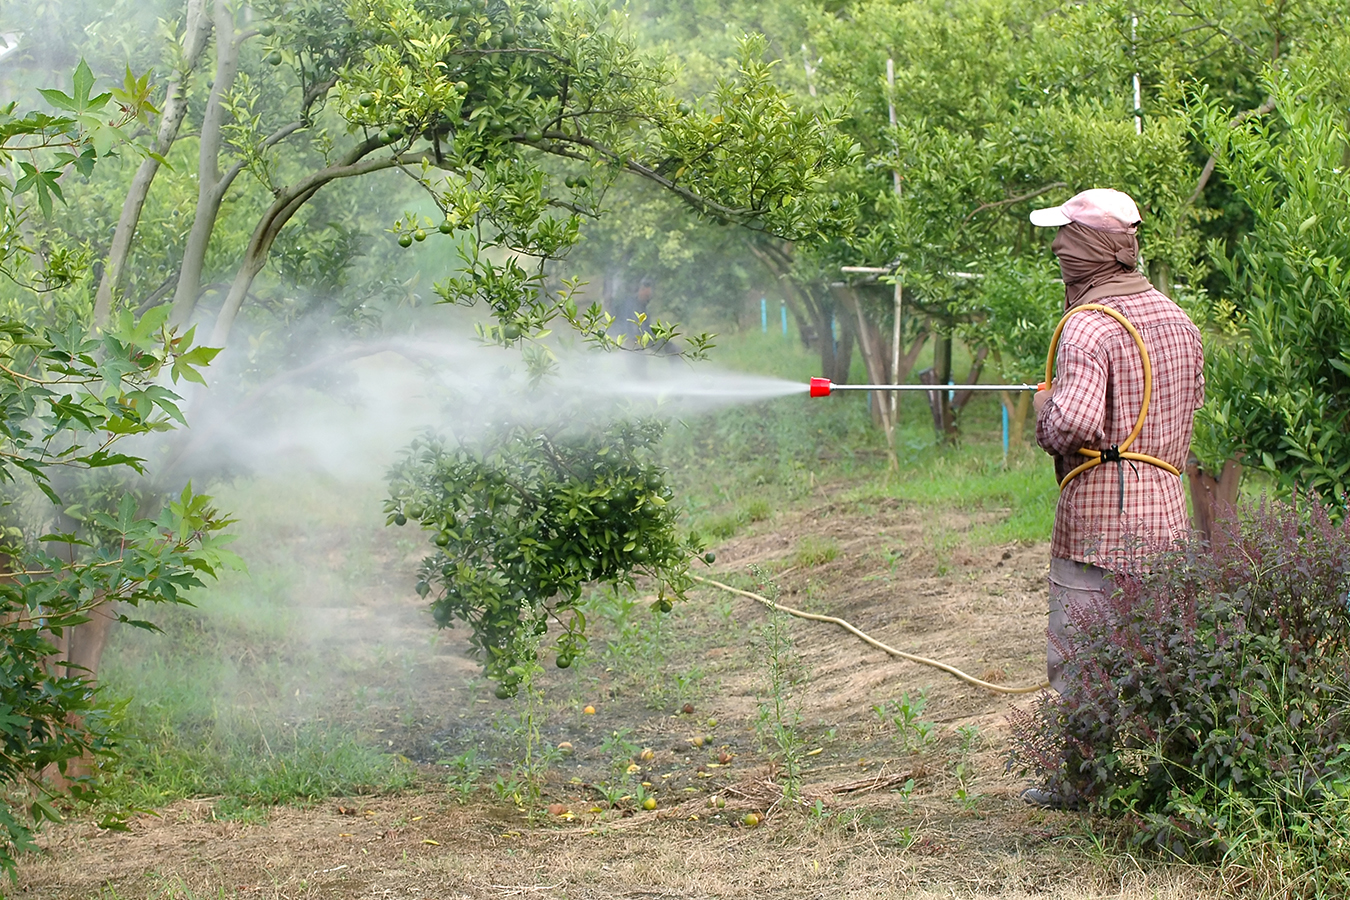 Campesino riega pesticida. Foto: iStock/Getty Images via California Healthline